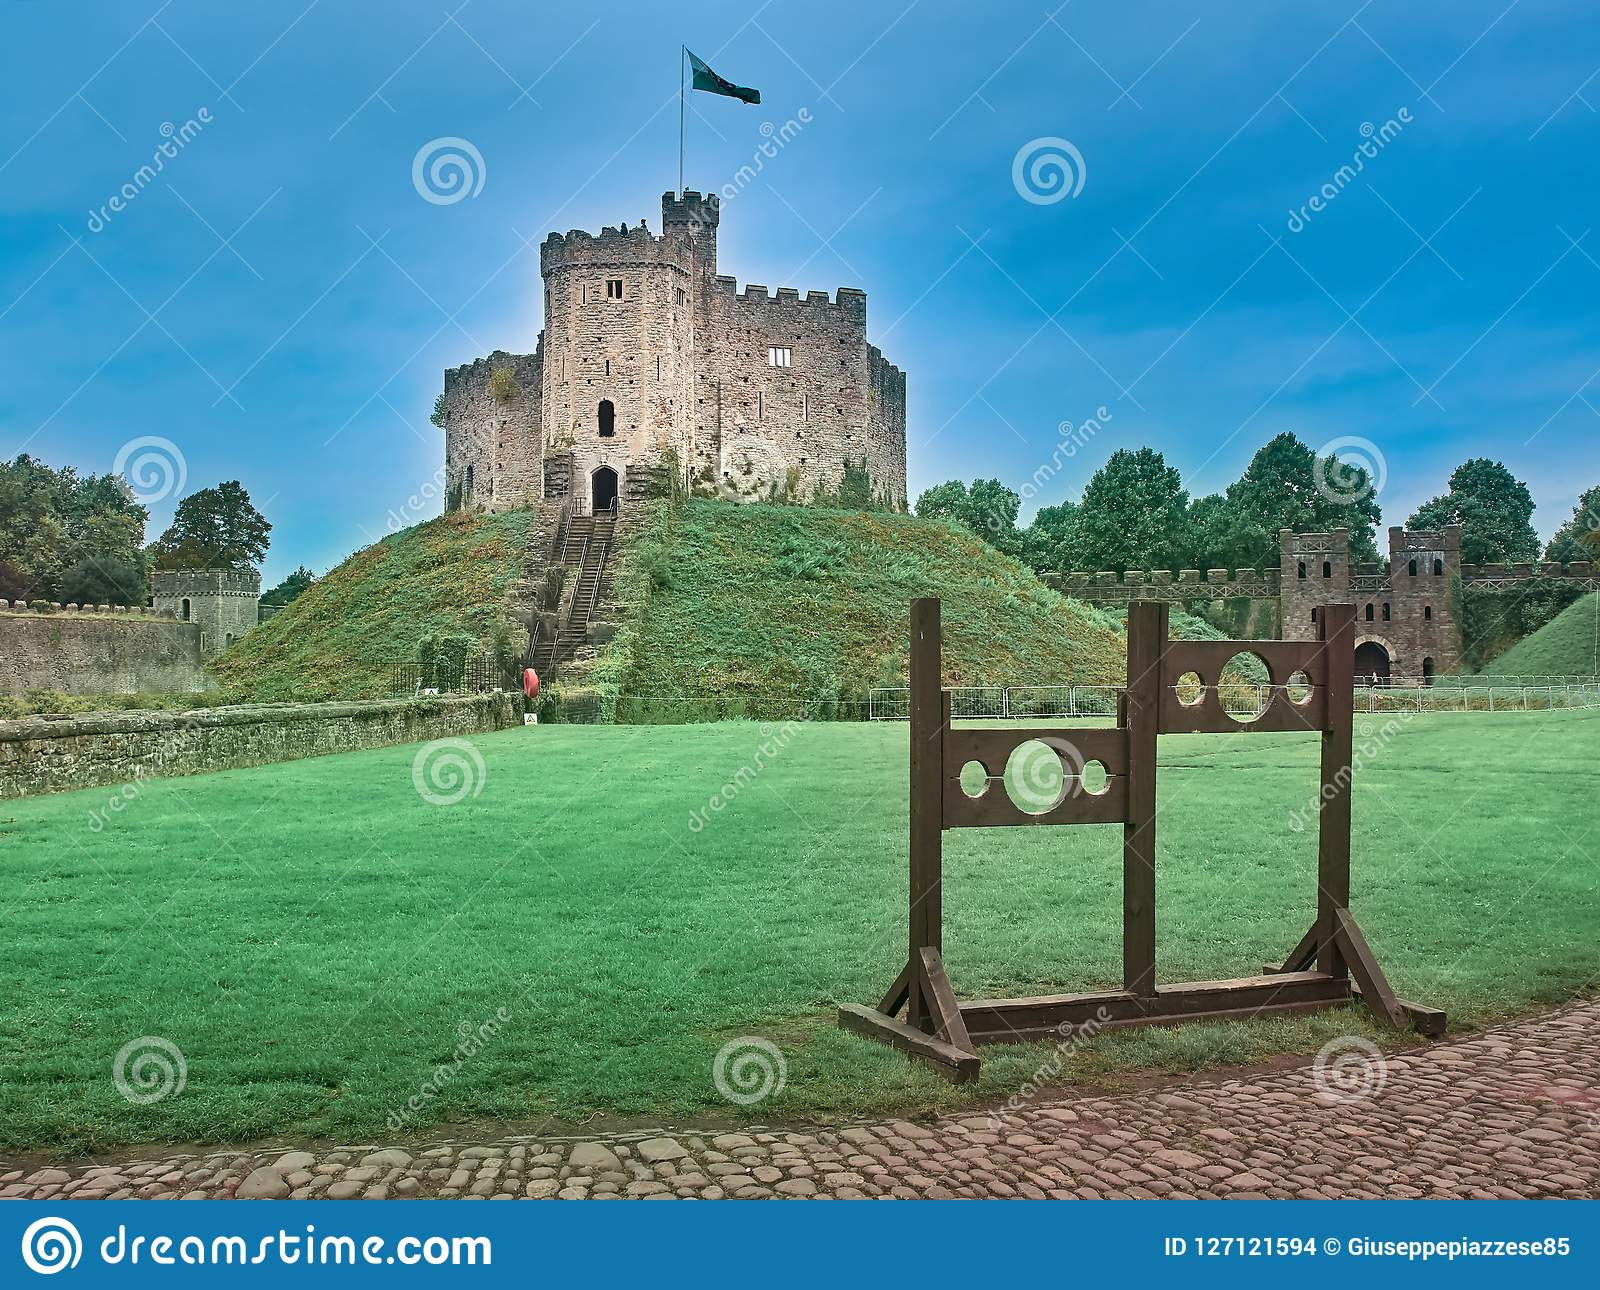 Shot of the Castle of Cardiff